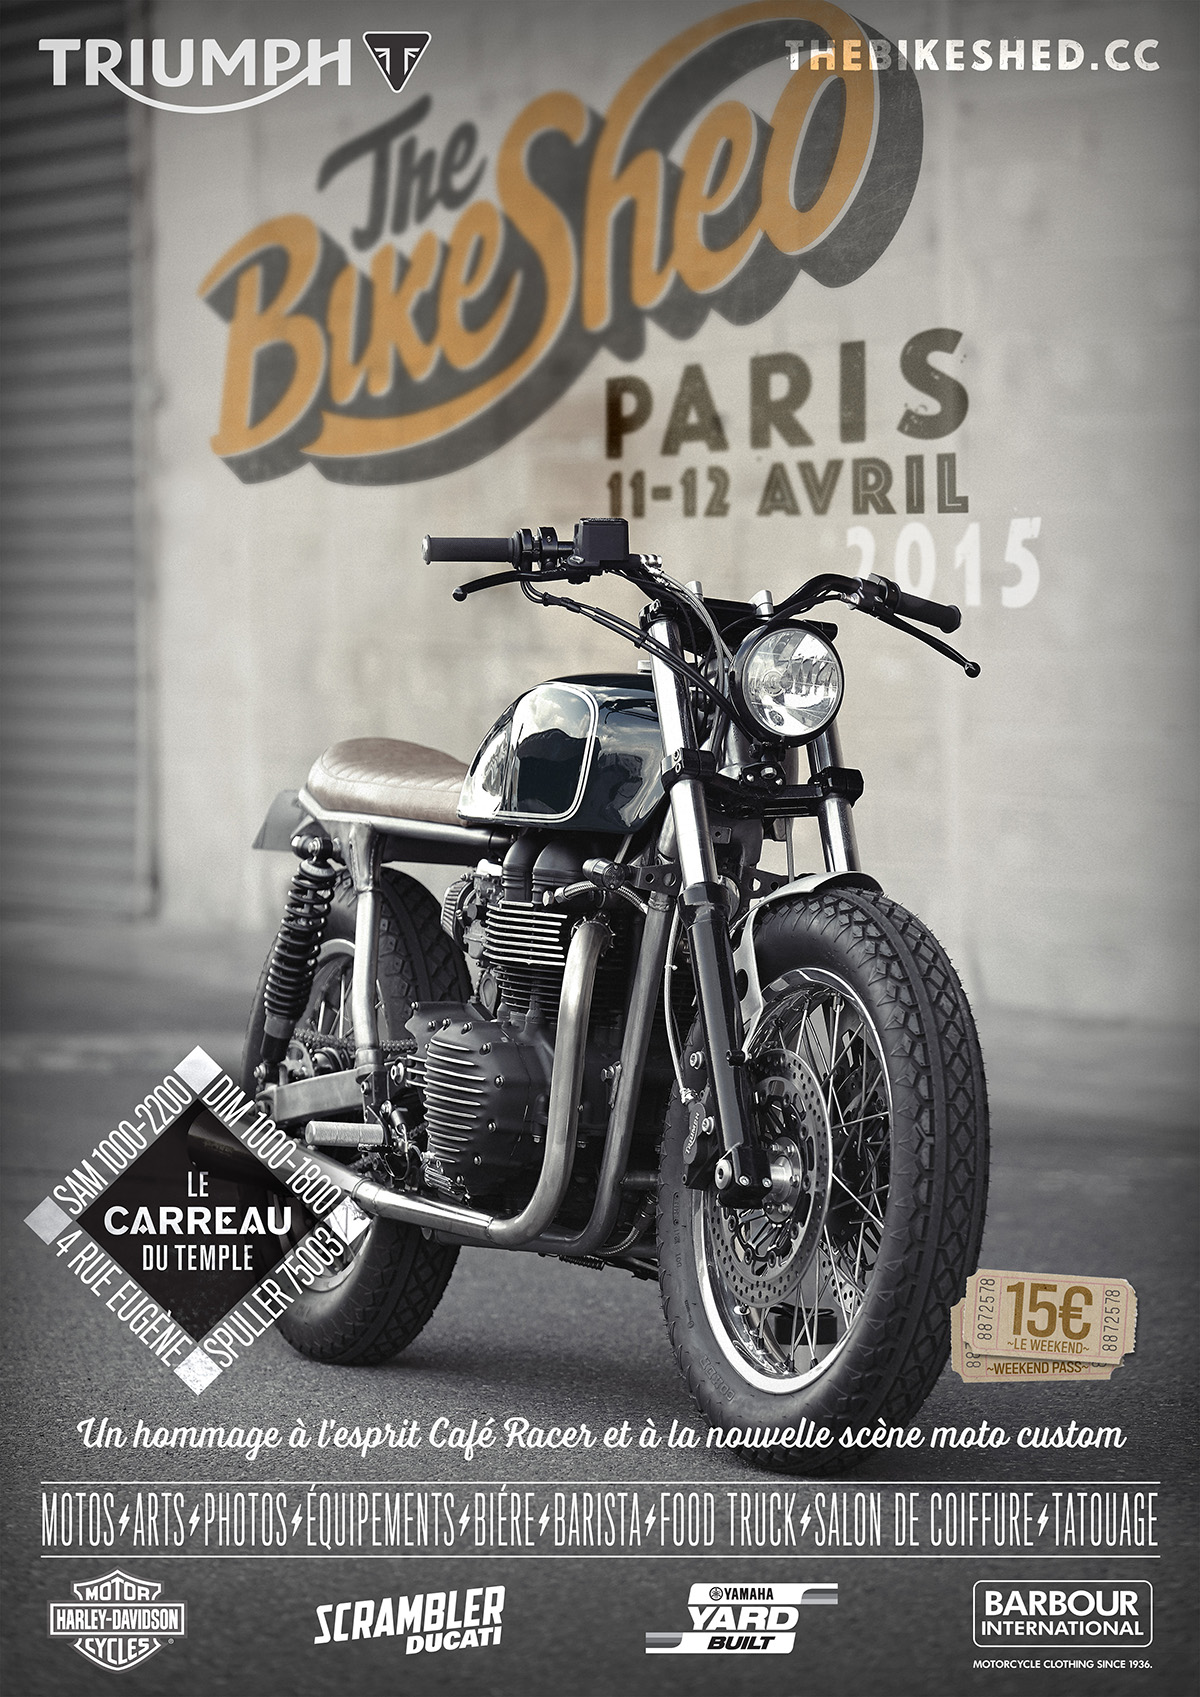 the_bike_shed_paris_2015